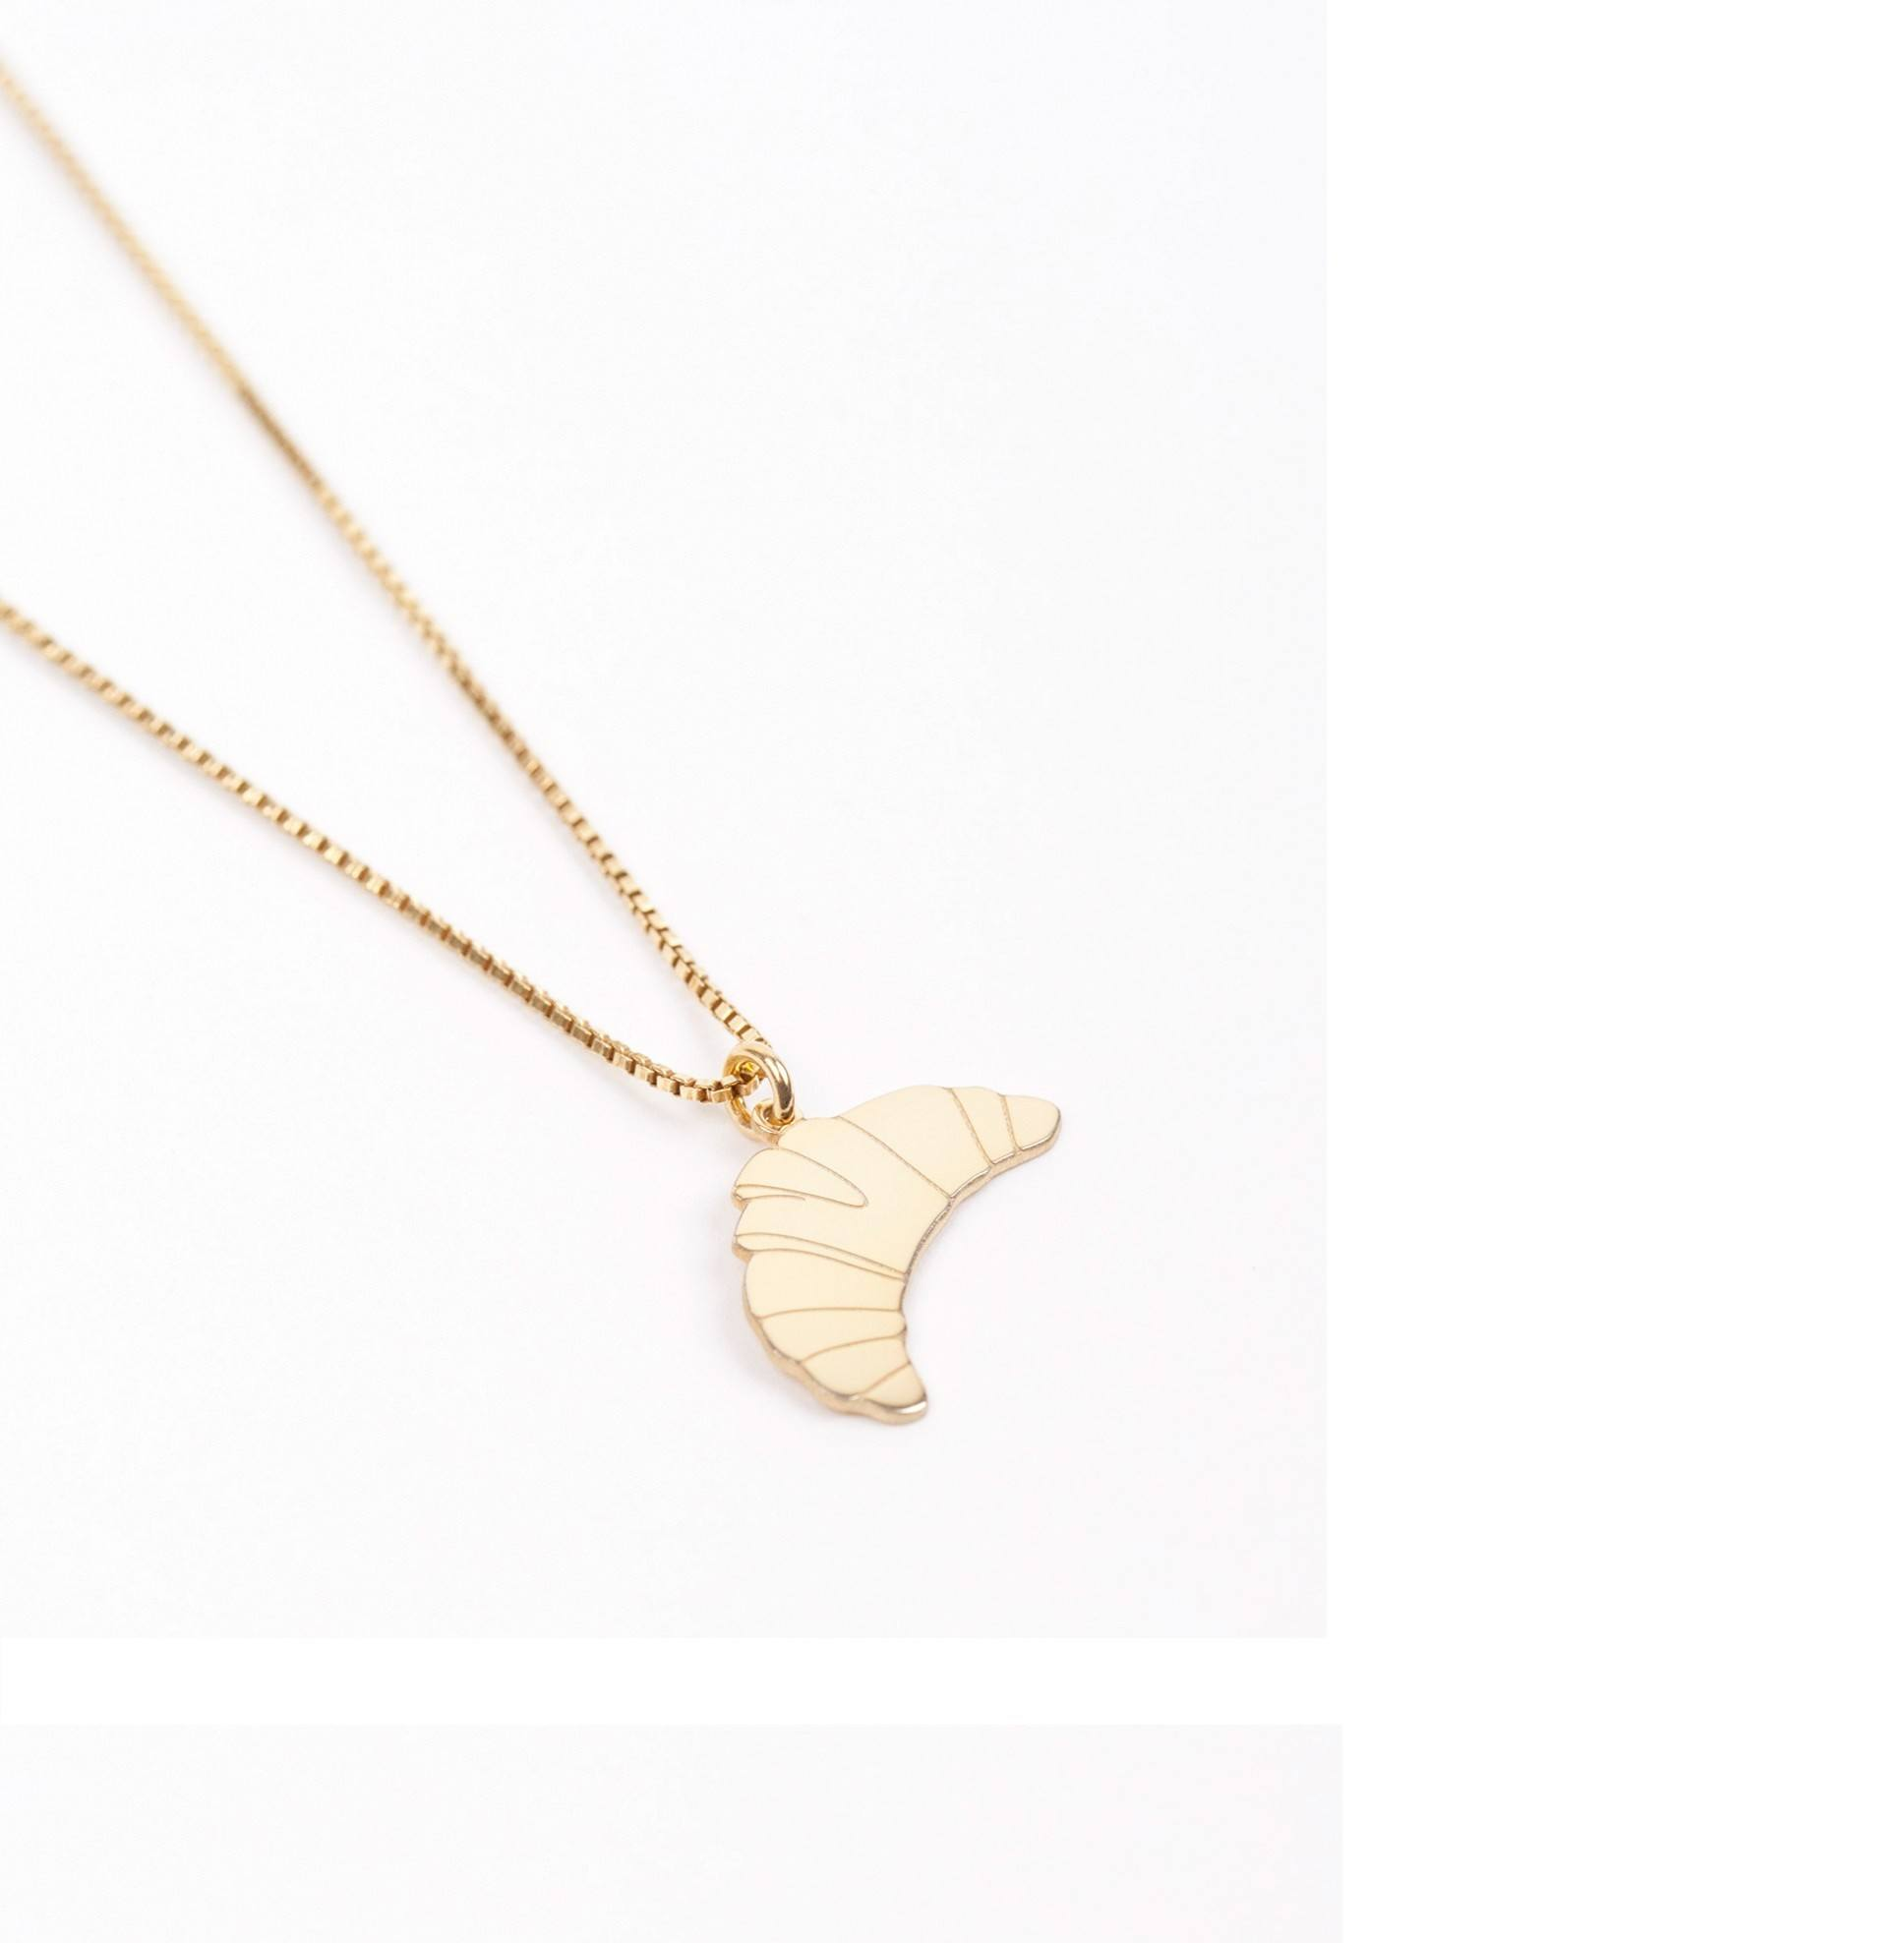 https://www.selecteddesigners.dk/media/catalog/product/j/u/jukserei-croissant-necklace-website.jpg